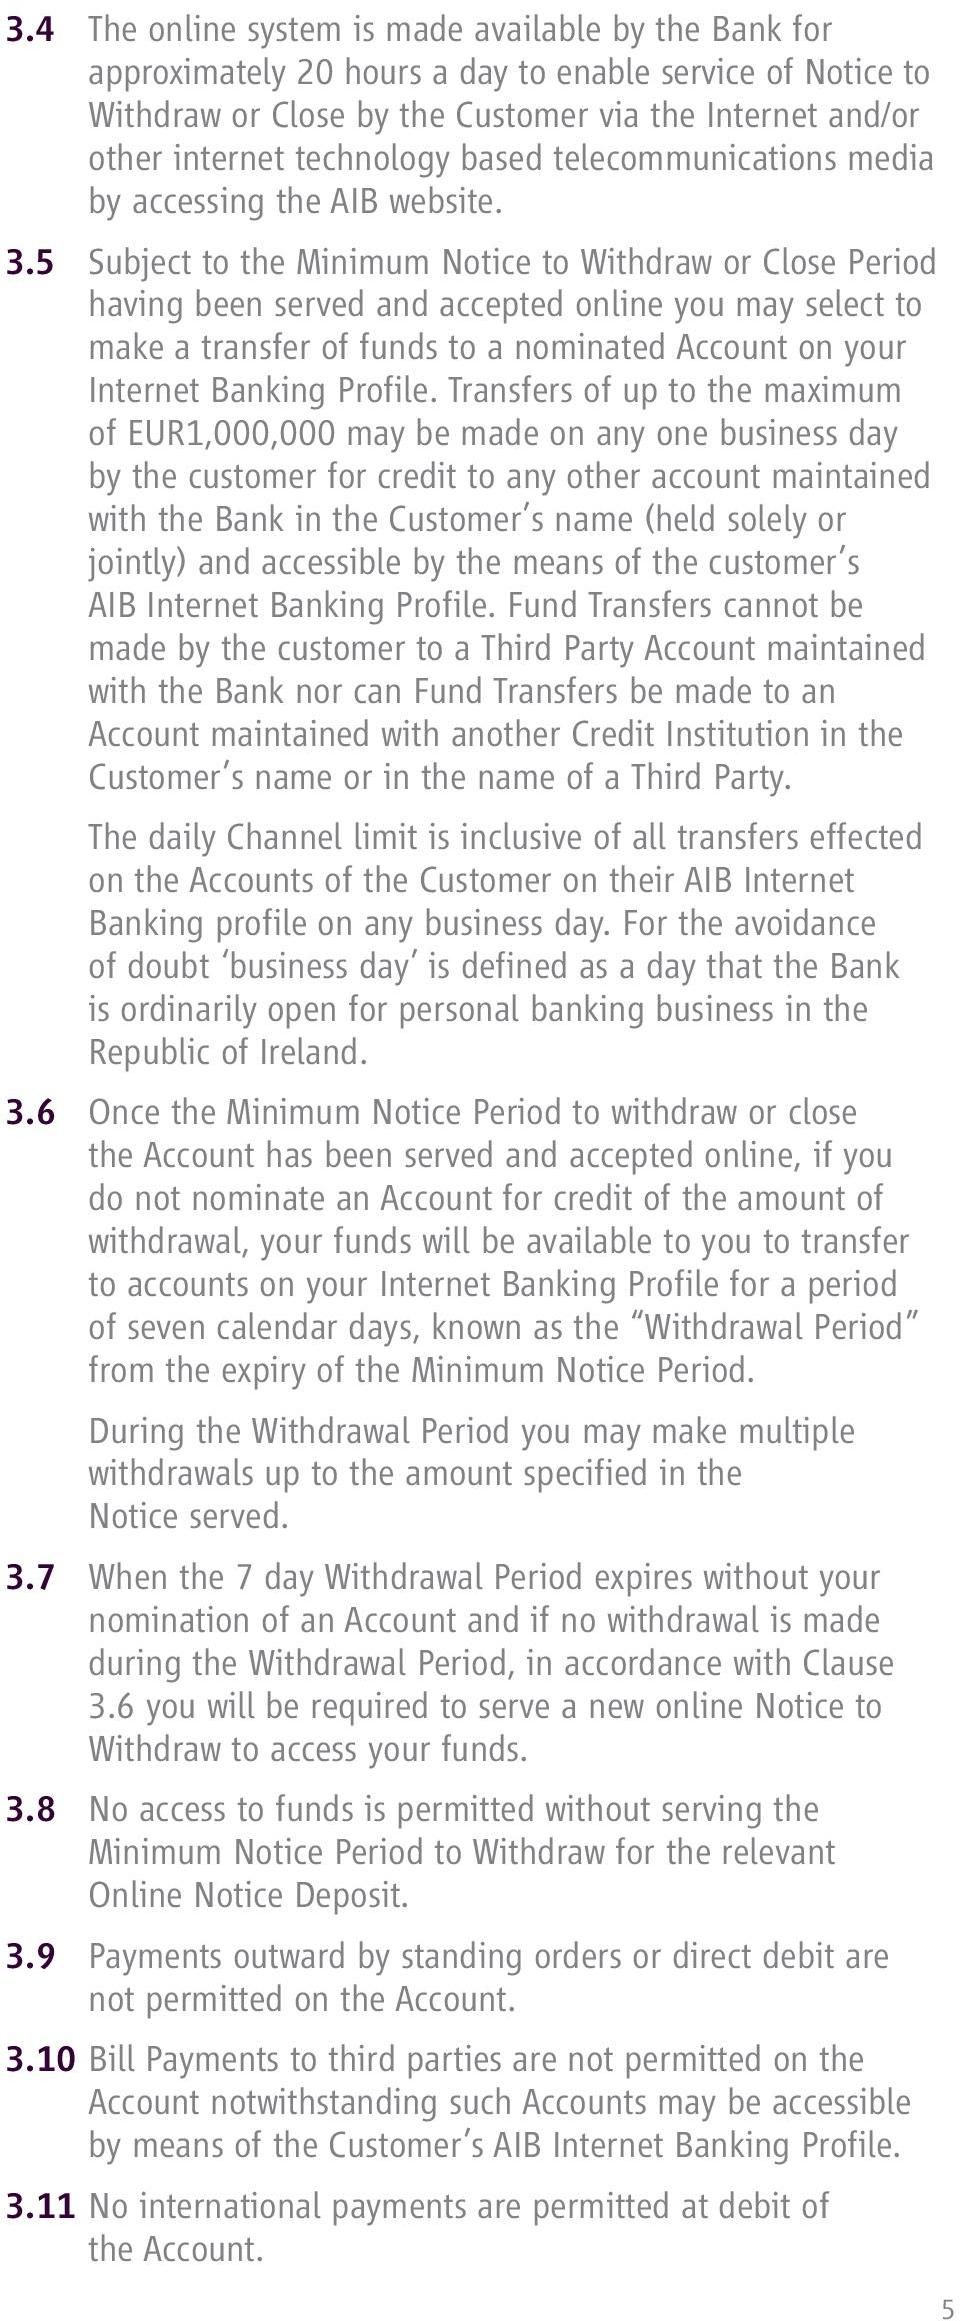 5 Subject to the Minimum Notice to Withdraw or Close Period having been served and accepted online you may select to make a transfer of funds to a nominated Account on your Internet Banking Profile.